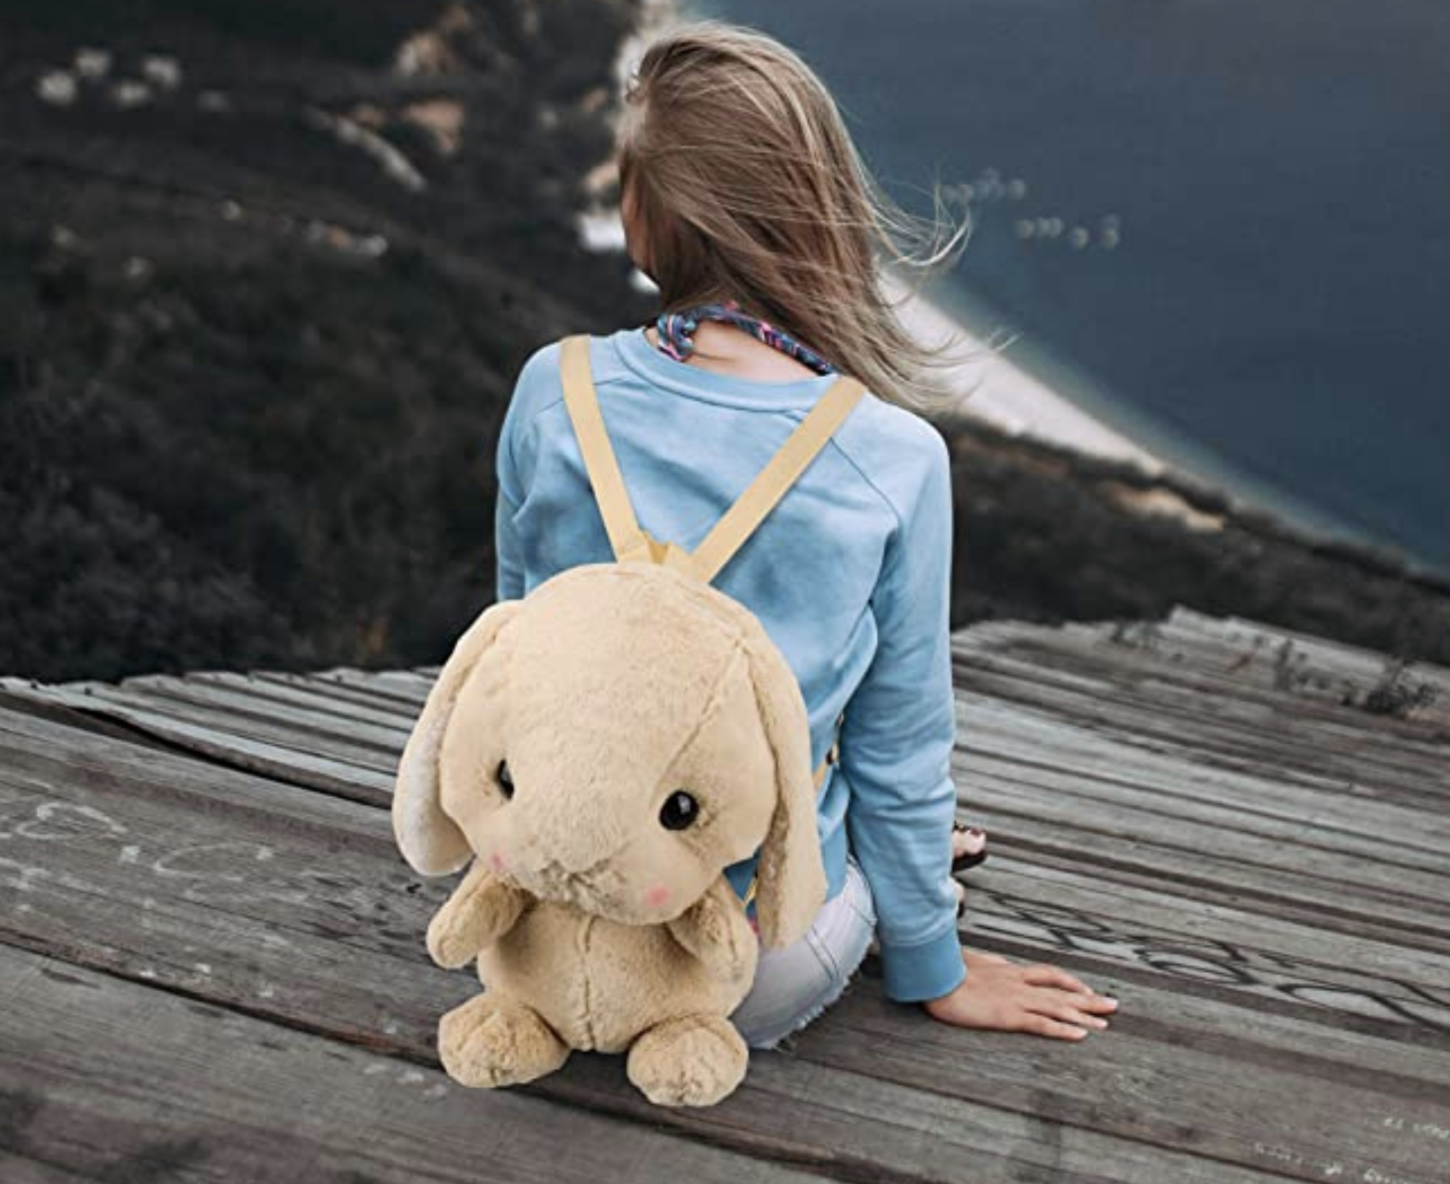 model wearing a beige plush bunny shaped backpack